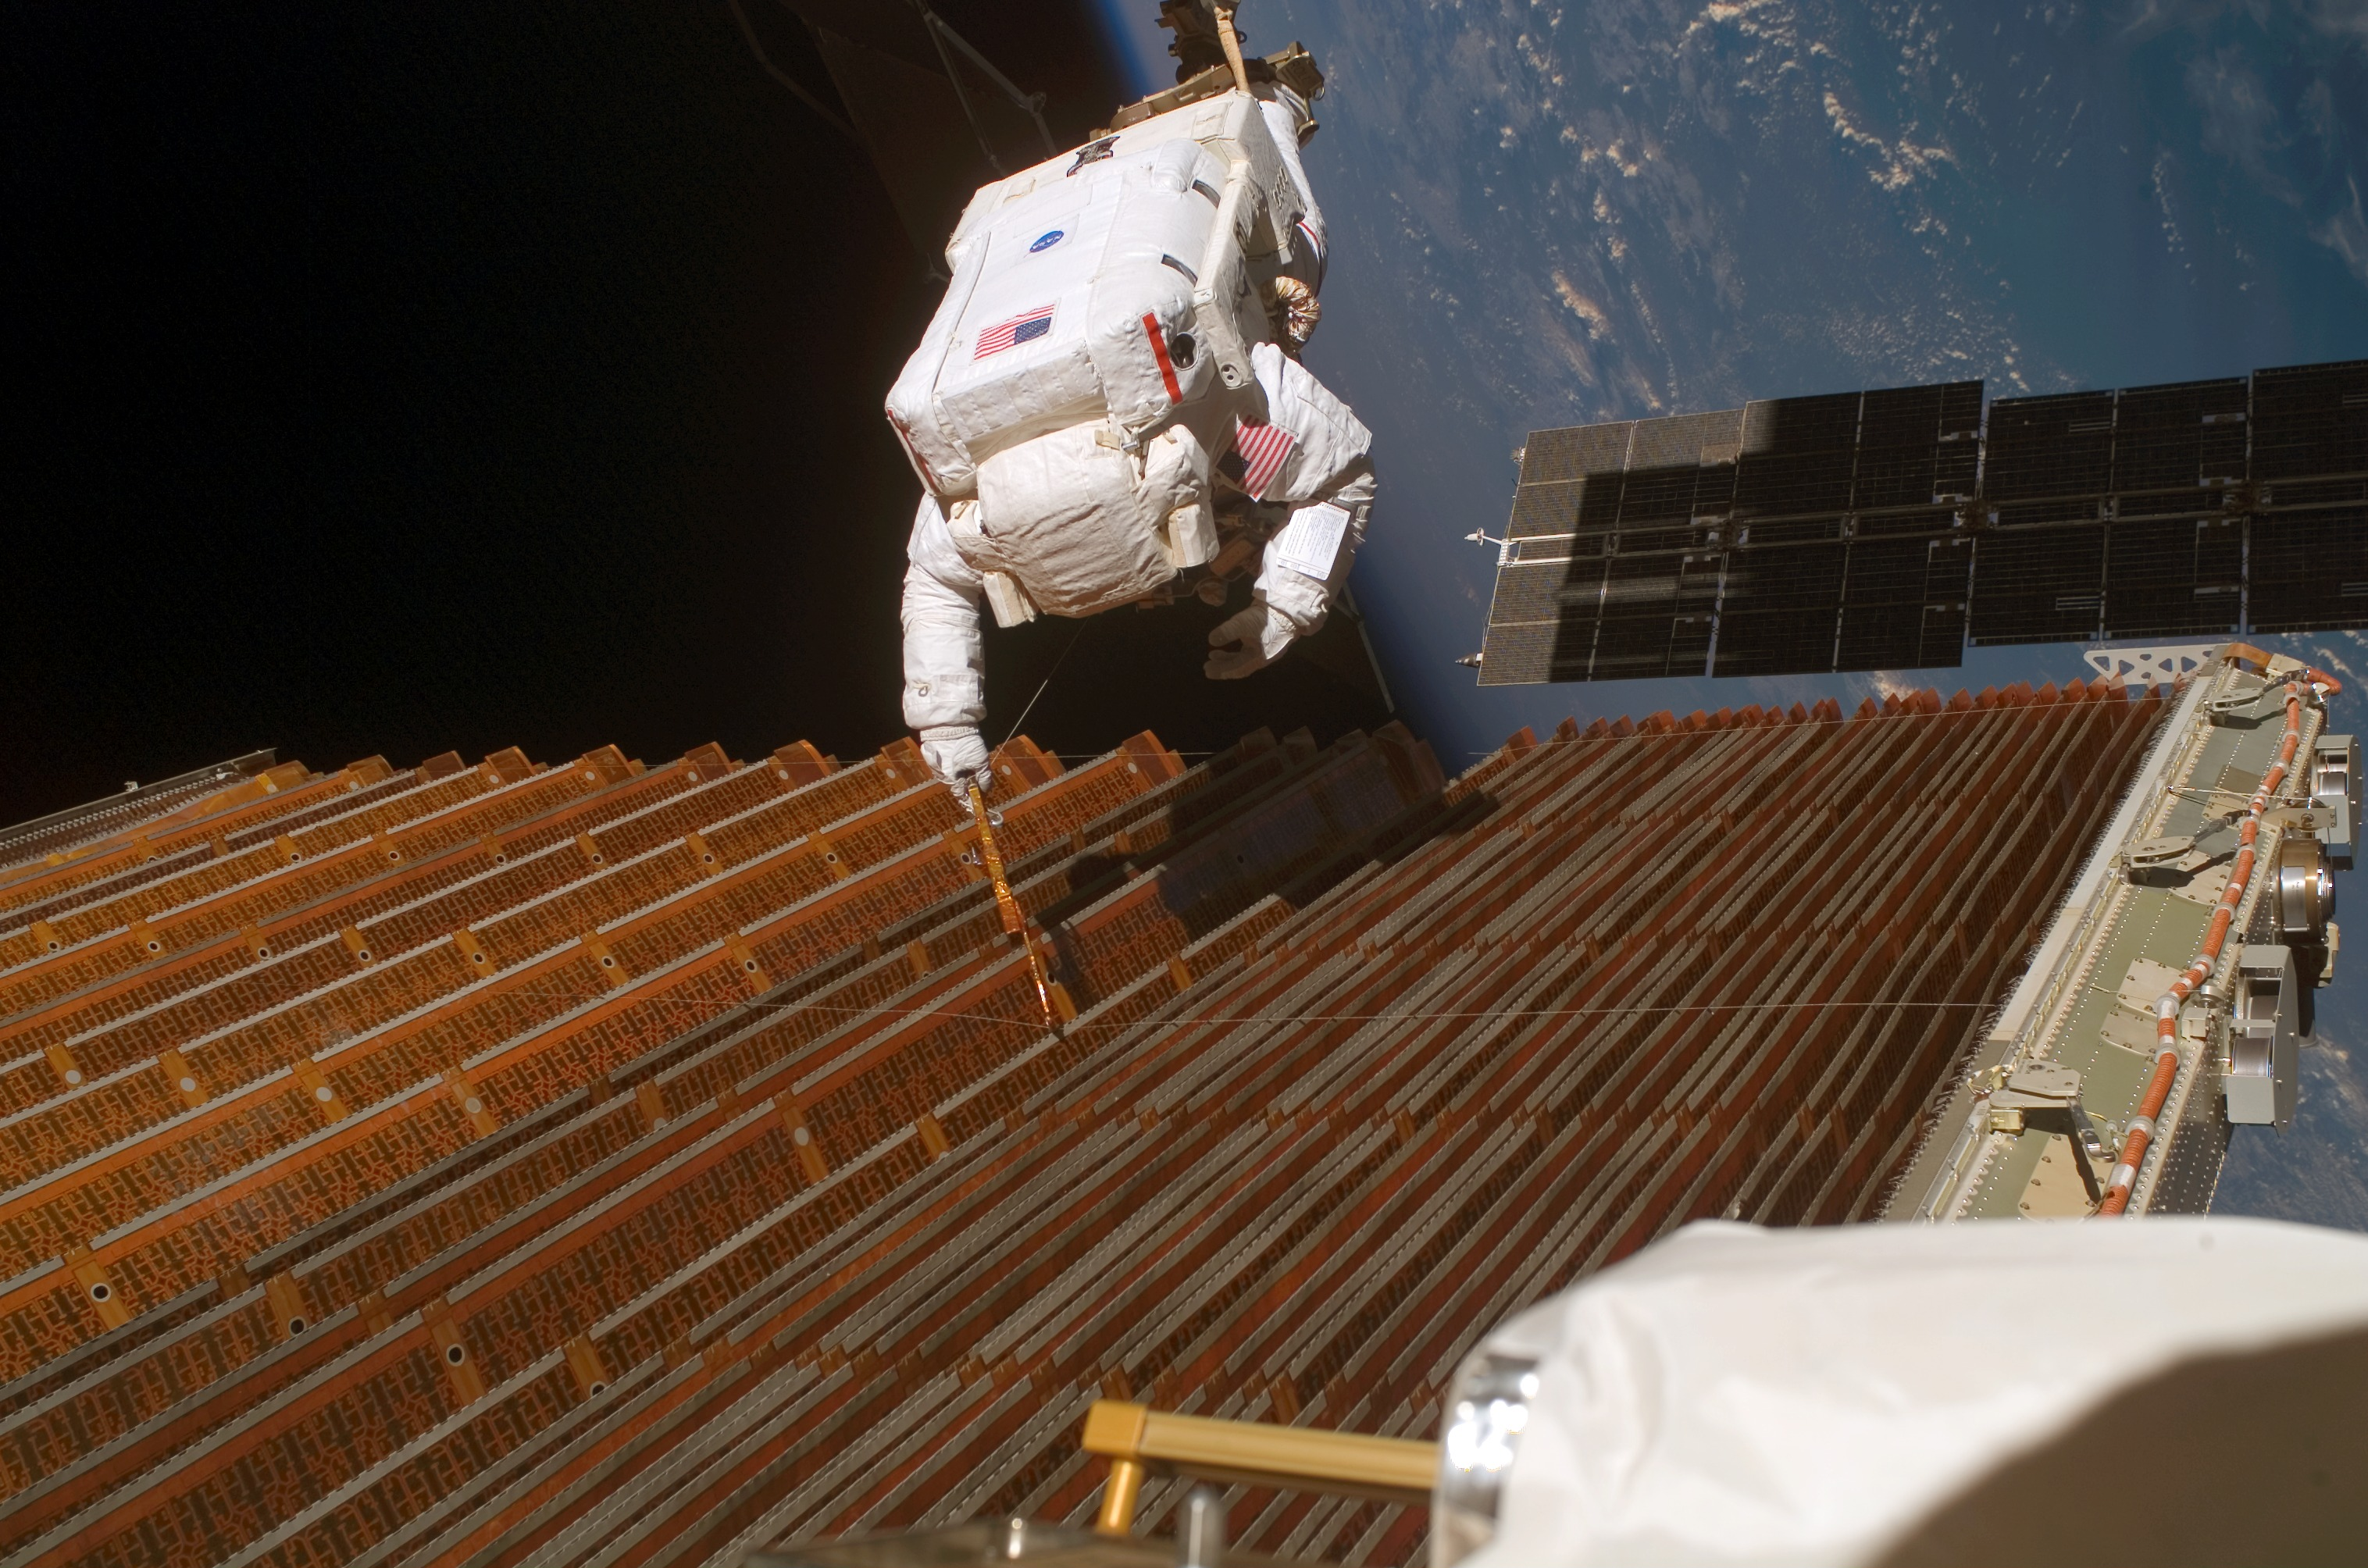 Astronaut Robert Curbeam Jr performrs an EVA near the ISS ...